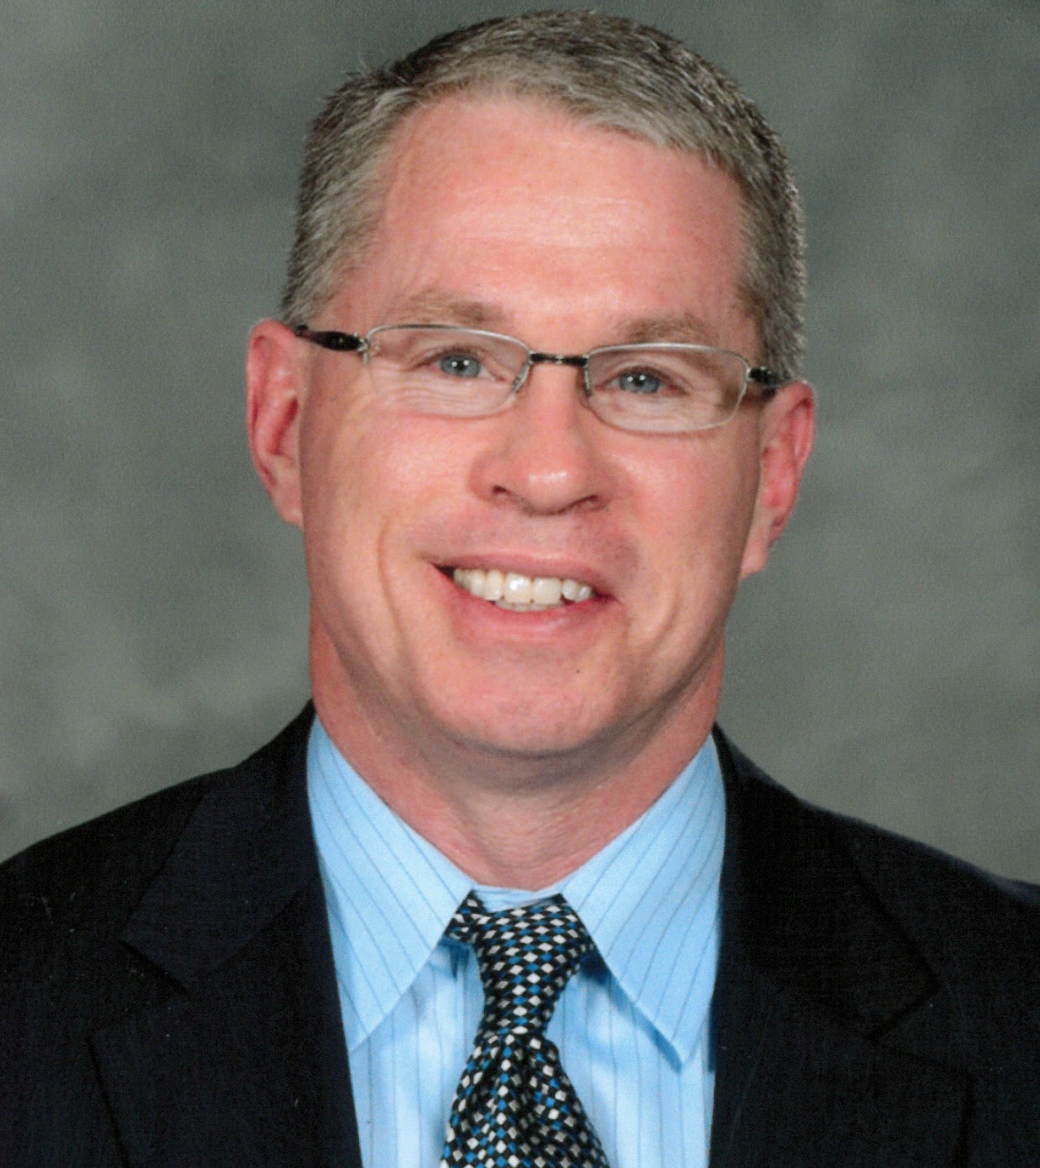 Brad Bentley, President - Industry leader and liaison with positions in trucking media companies like Randall-Reilly to most recently serving as President of the Truckload Carriers Association (TCA). Oversees a variety of key roles, including sales, operations and forming and enhancing trucking industry partnerships.